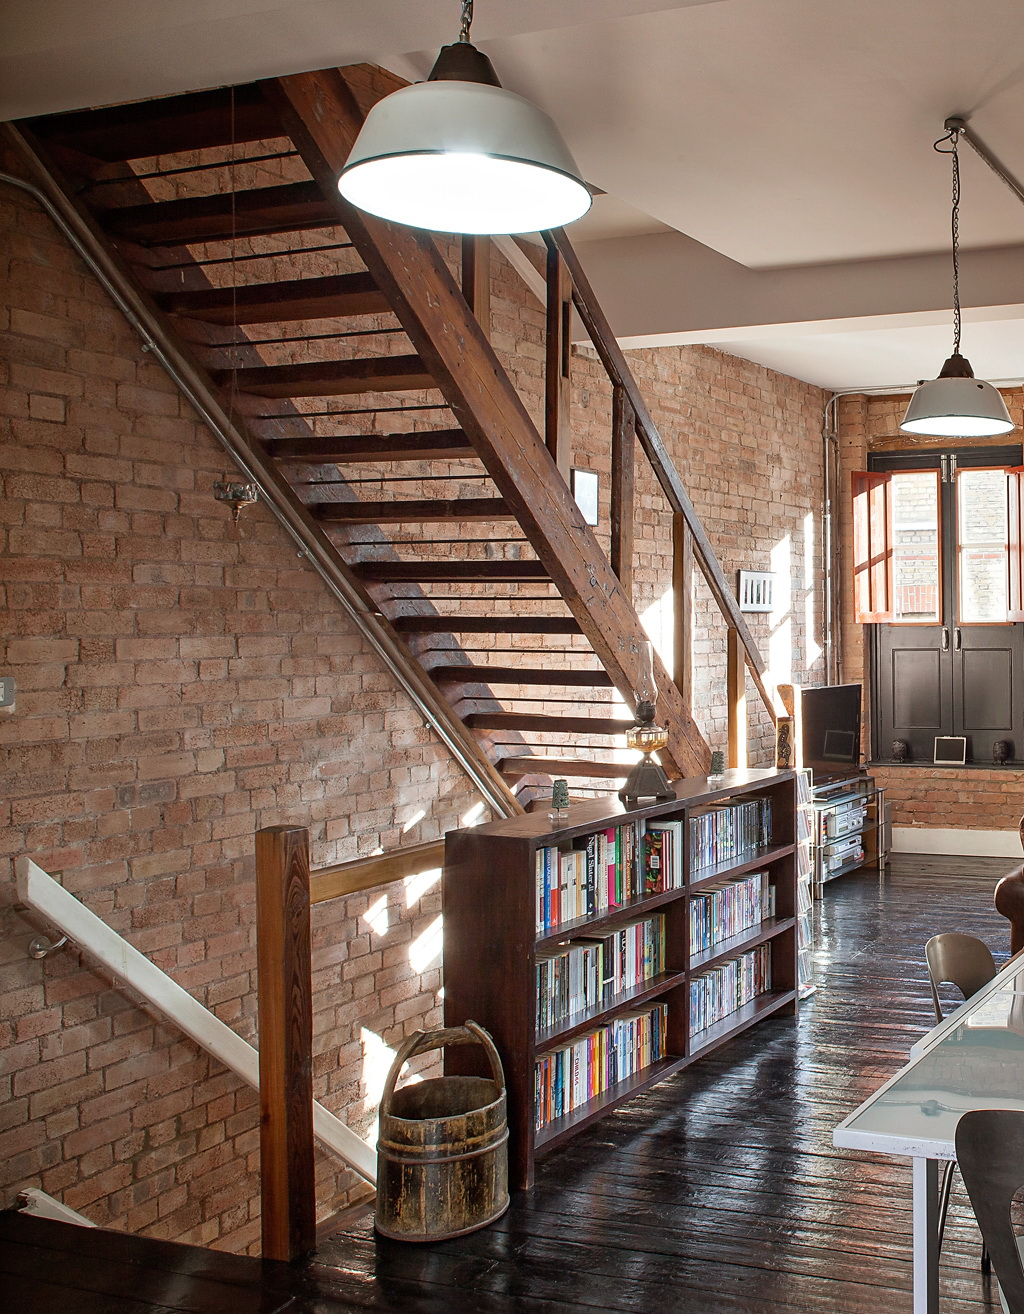 Chris-Dyson-Architects-Shoreditch-Warehouse-Conversion-4